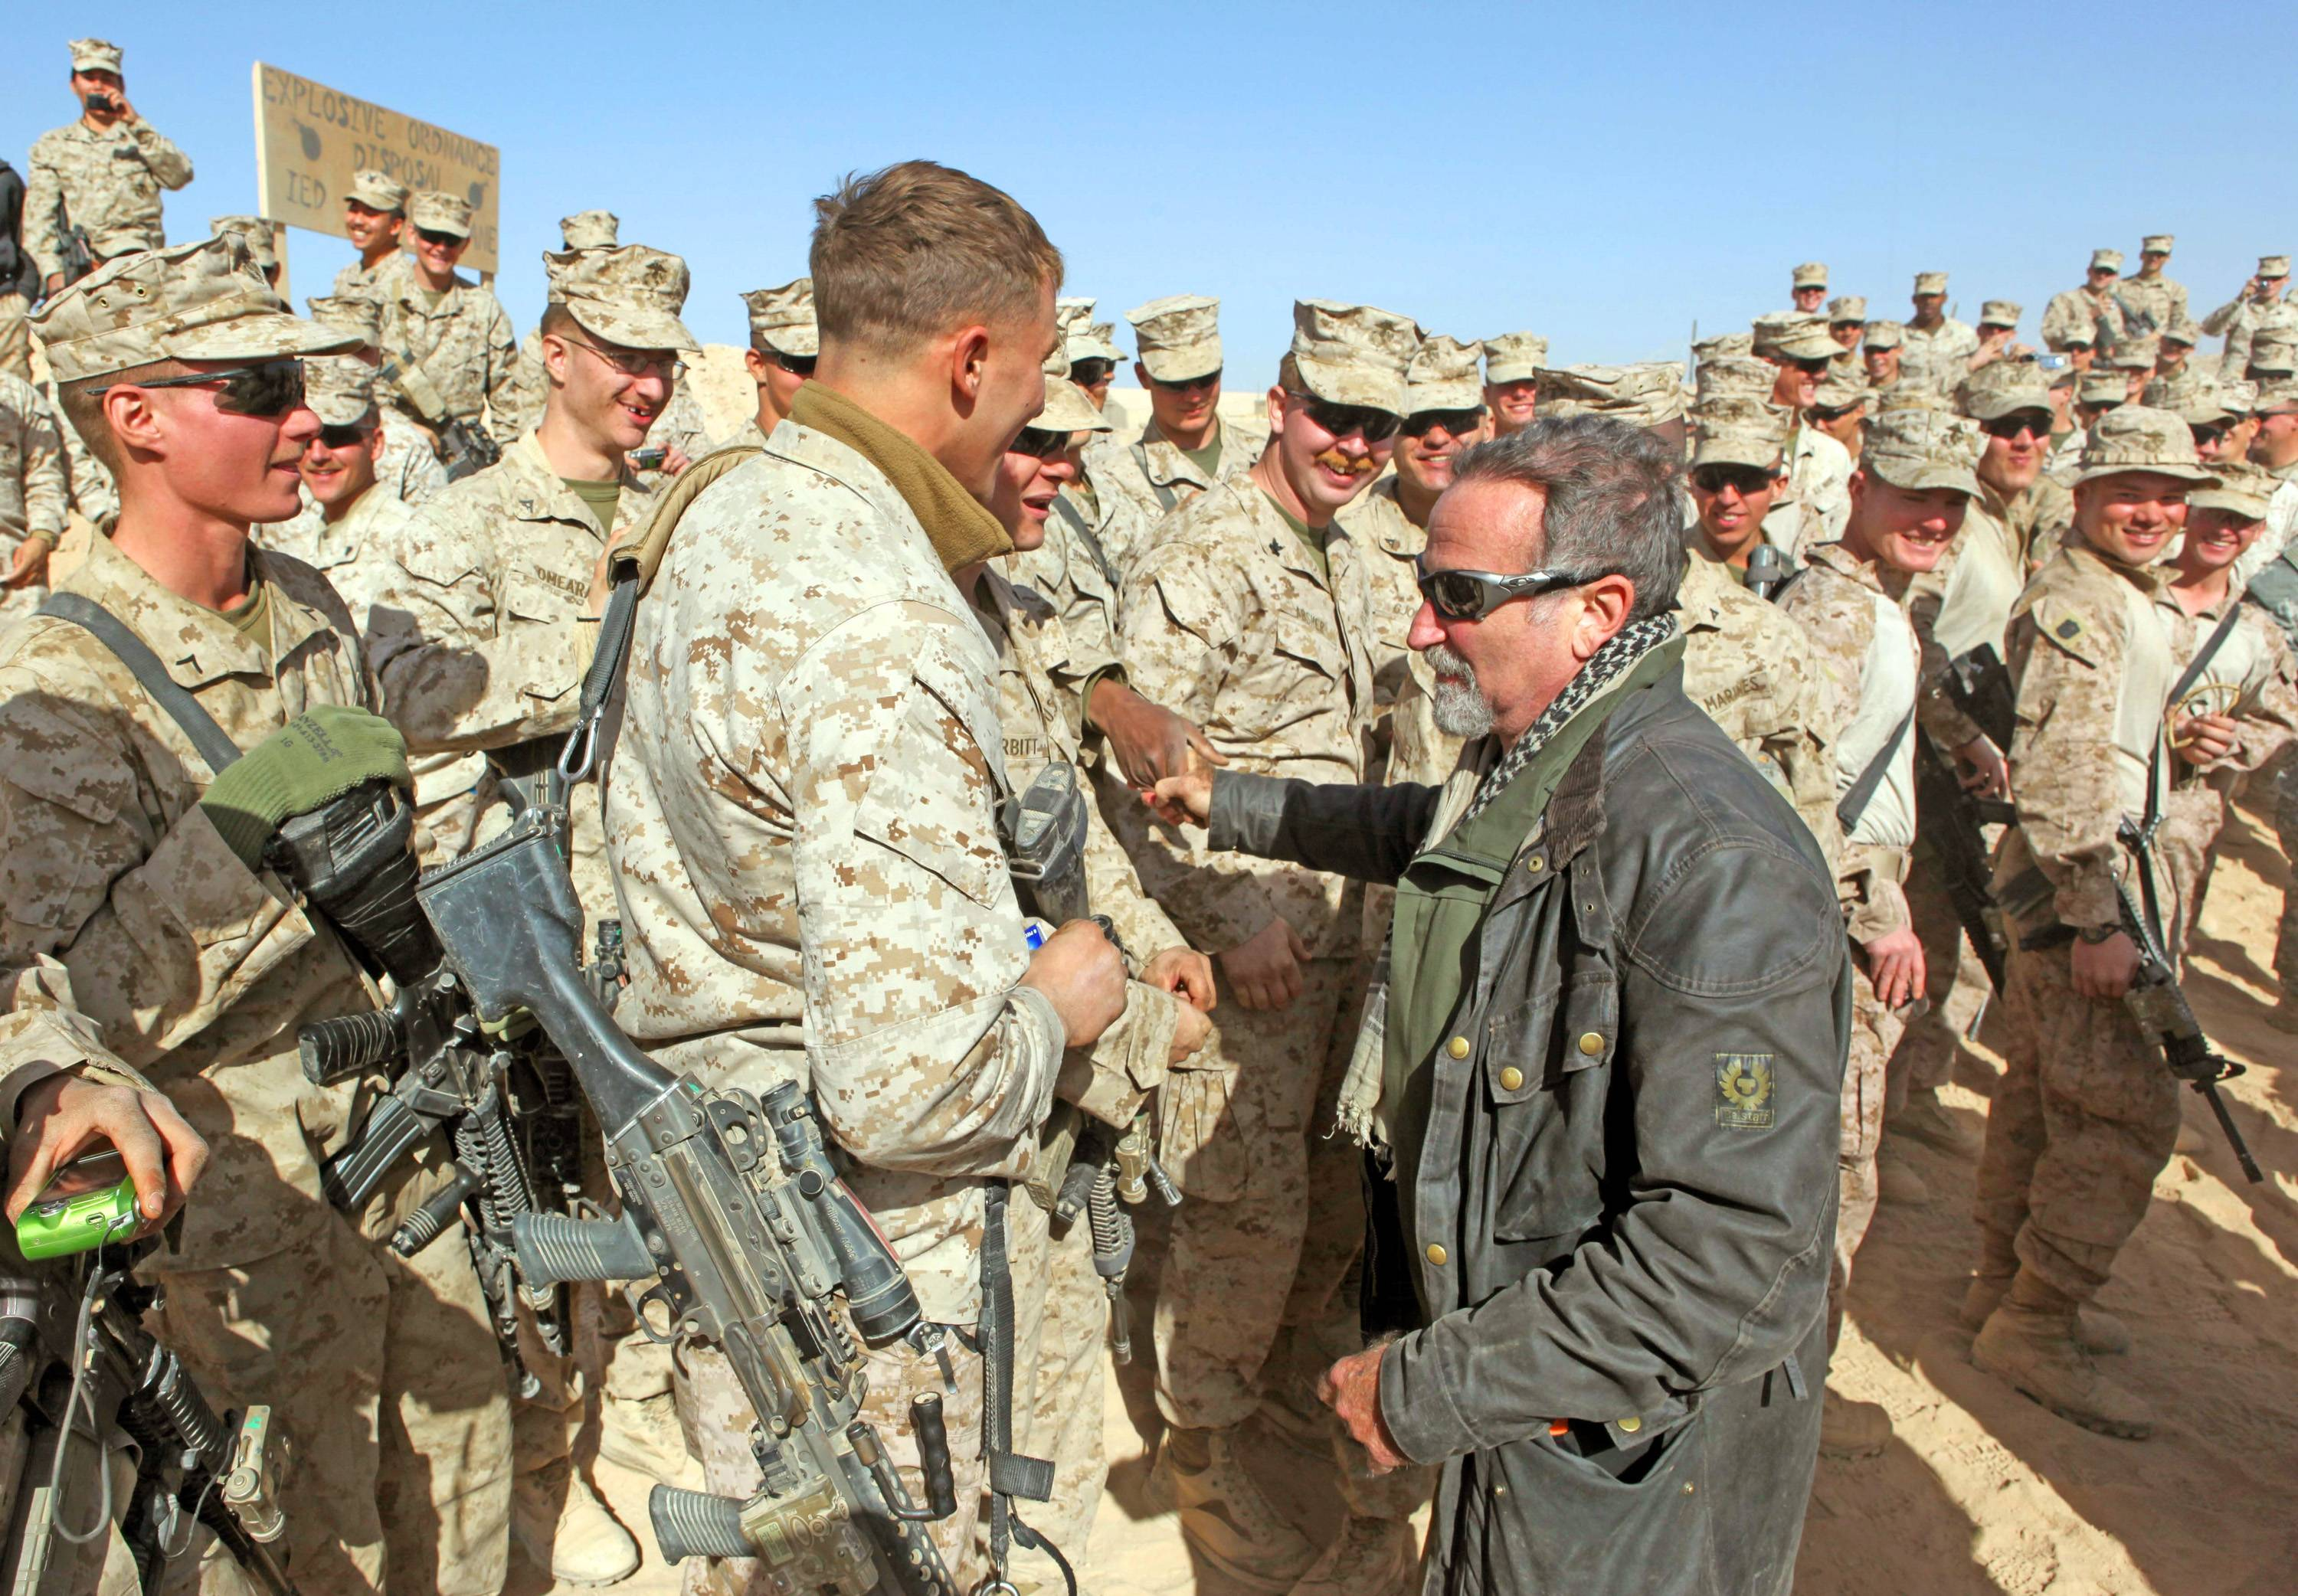 Actor-comedian Robin Williams shakes hands with Marines from 2nd Battalion, 9th Marine Regiment, during the USO's Holiday Troop Visit tour that stopped at Camp Hanson in Marjah, Helmand province, Afghanistan.